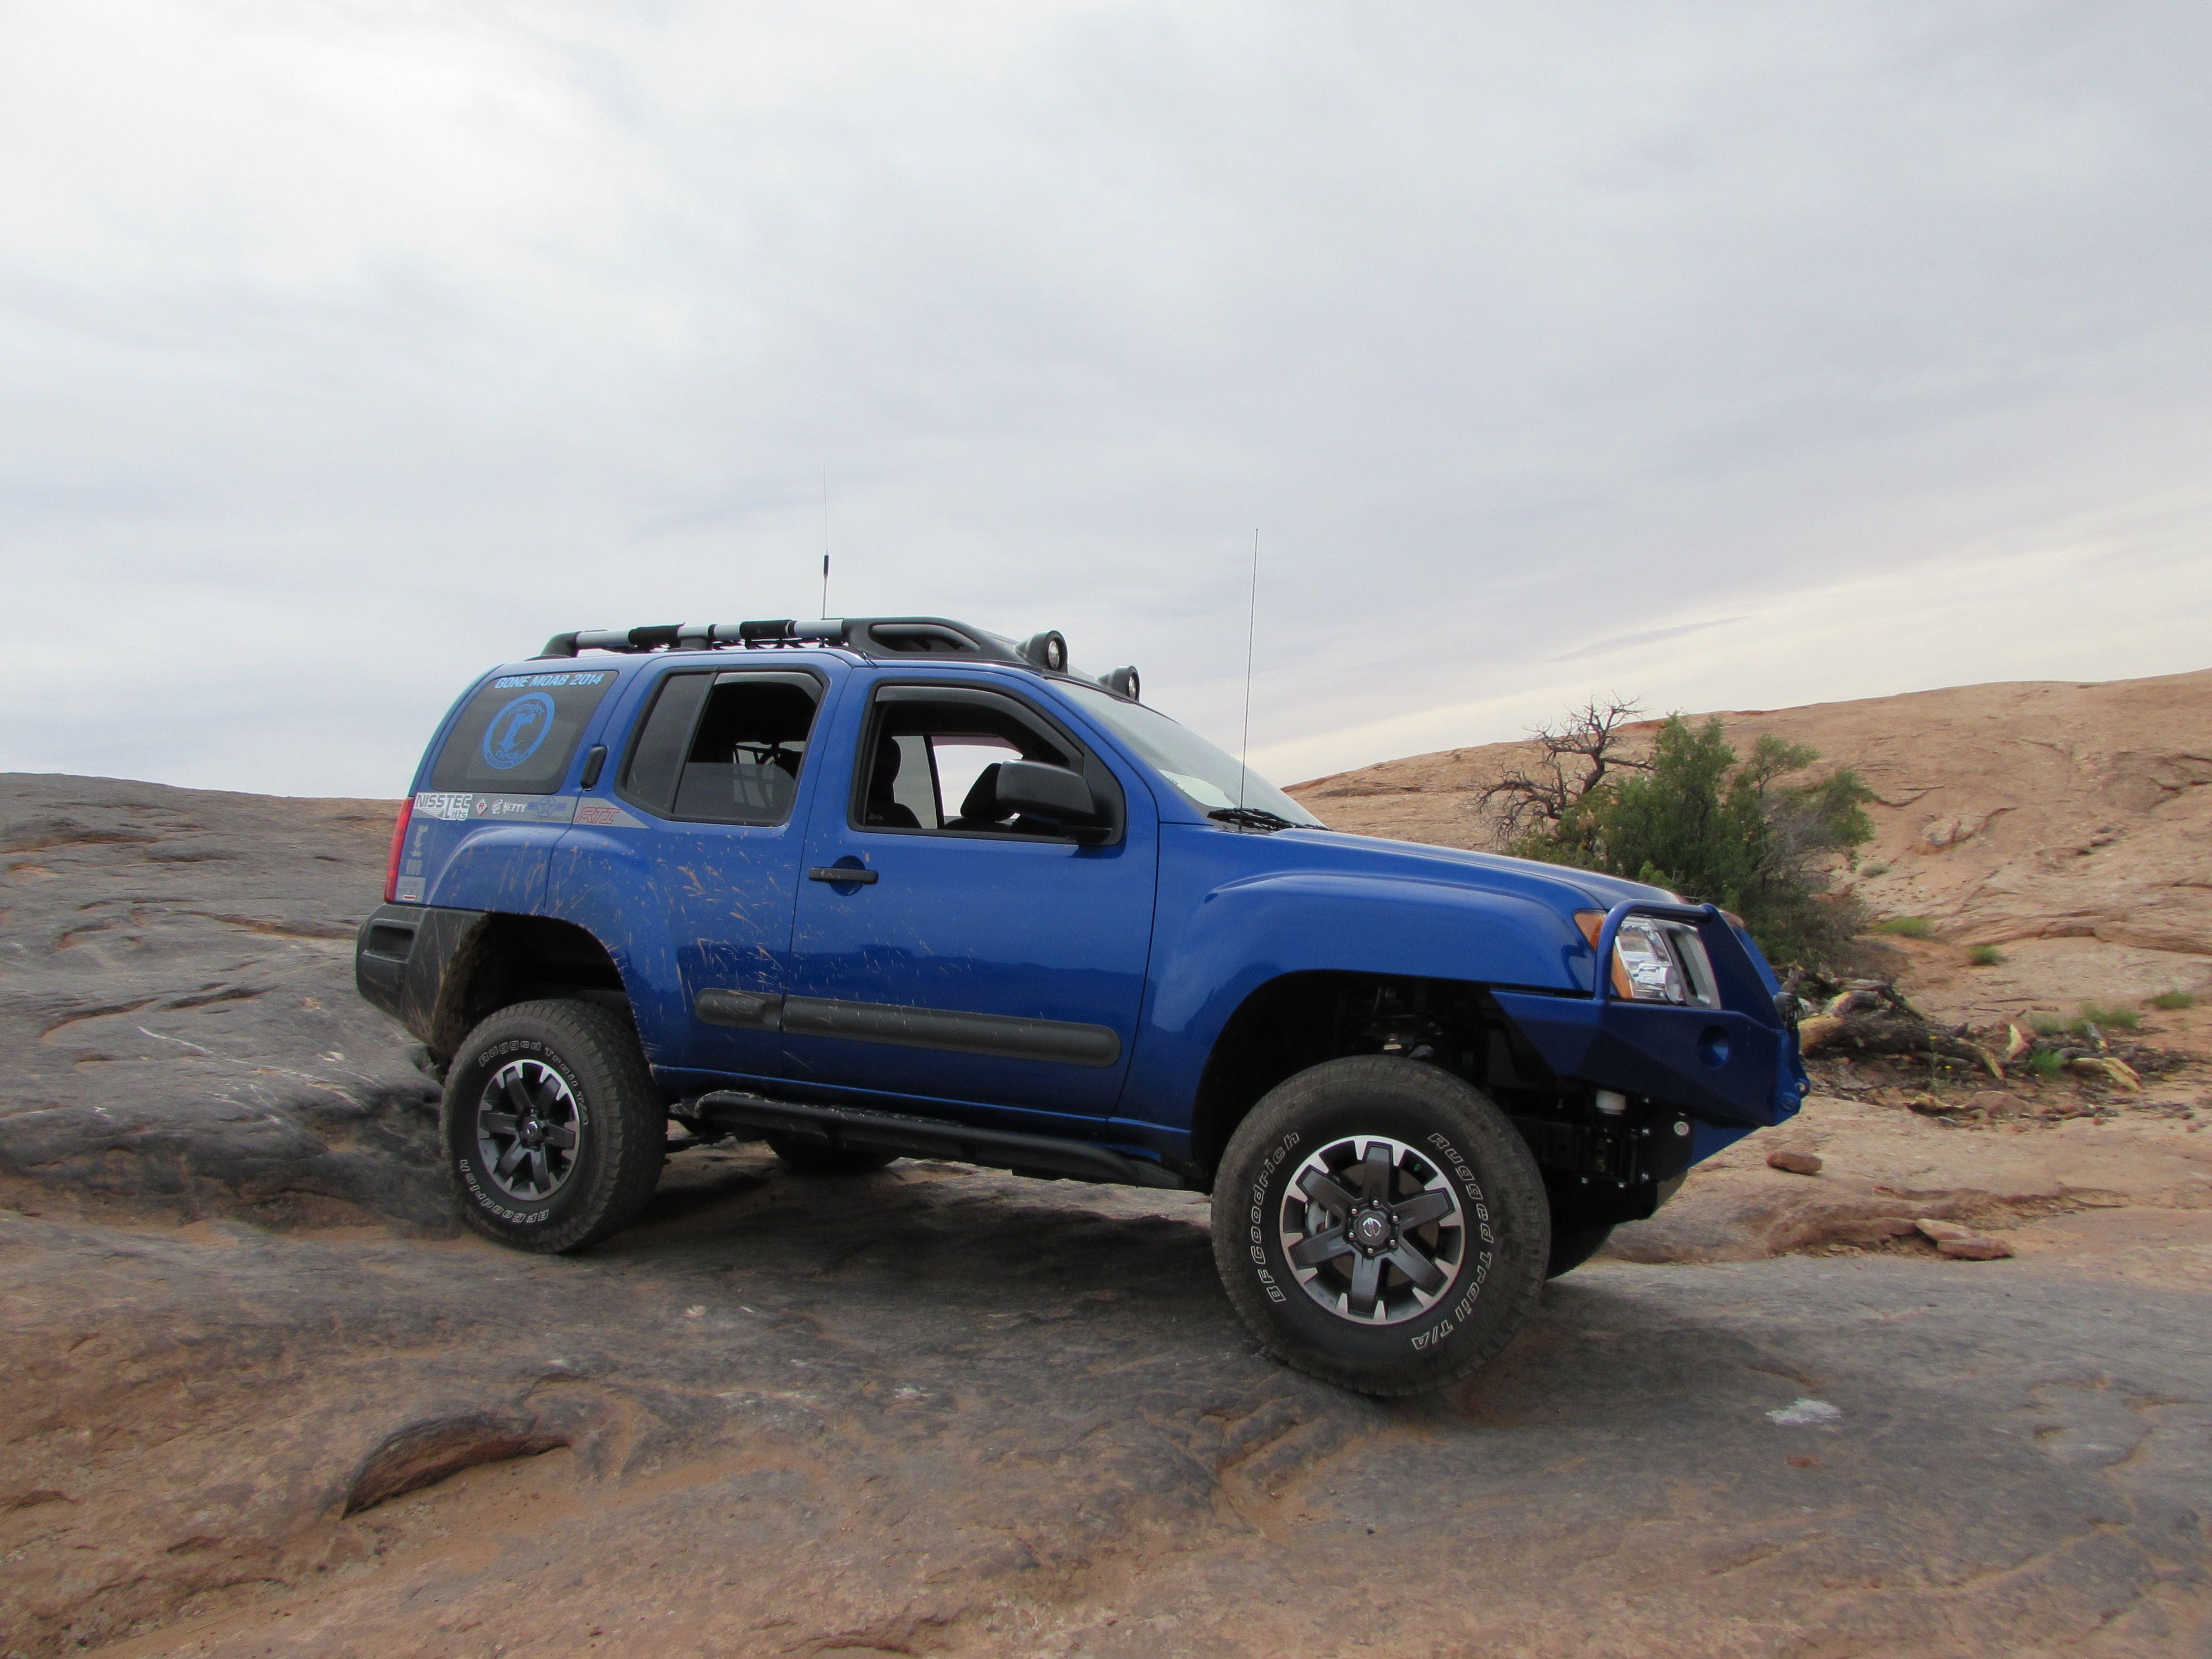 Raingler S Xterra With Nisstec S Lifts 4 5 Kit Bitchin Blue